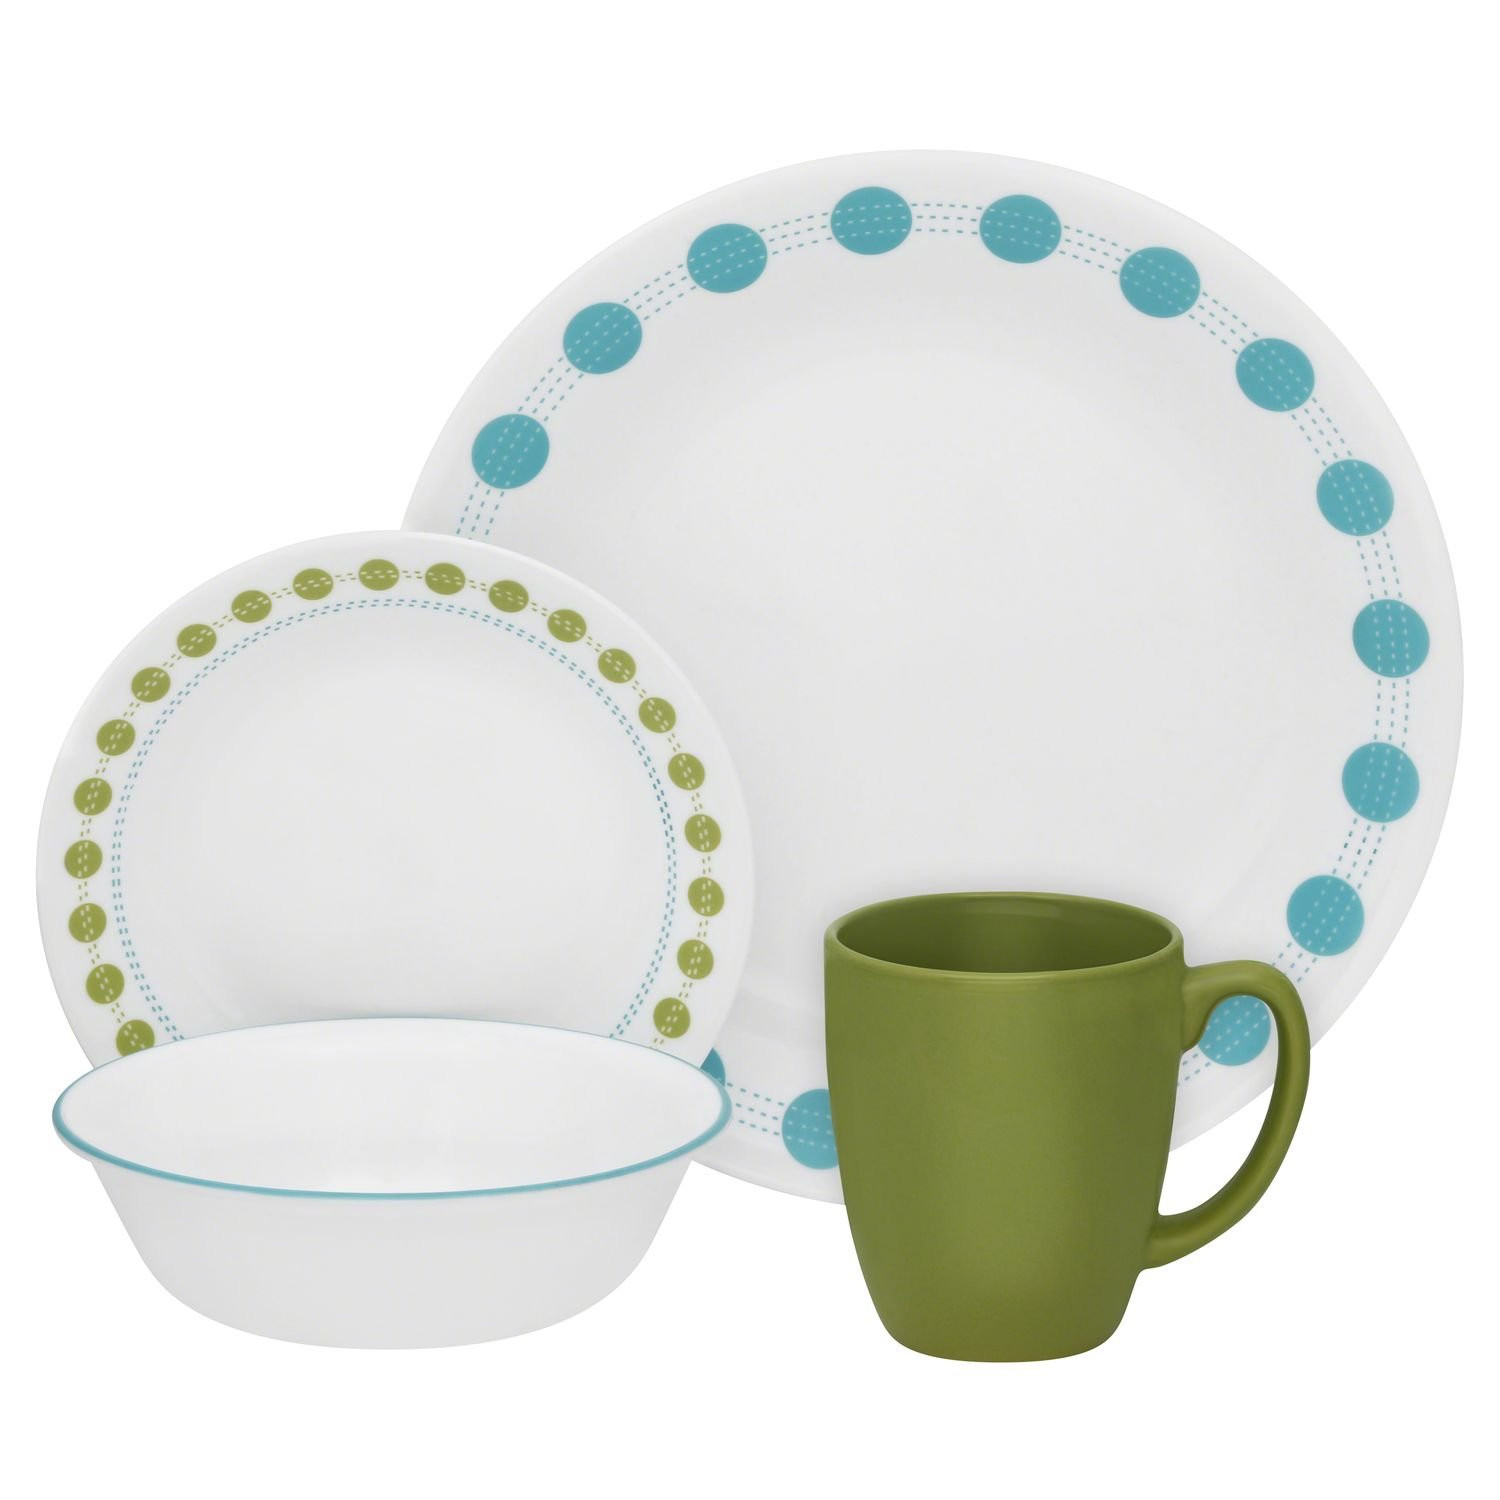 Amazon.com | Corelle Livingware 16-Piece Dinnerware Set South Beach Service for 4 Dinnerware Sets  sc 1 st  Amazon.com & Amazon.com | Corelle Livingware 16-Piece Dinnerware Set South Beach ...